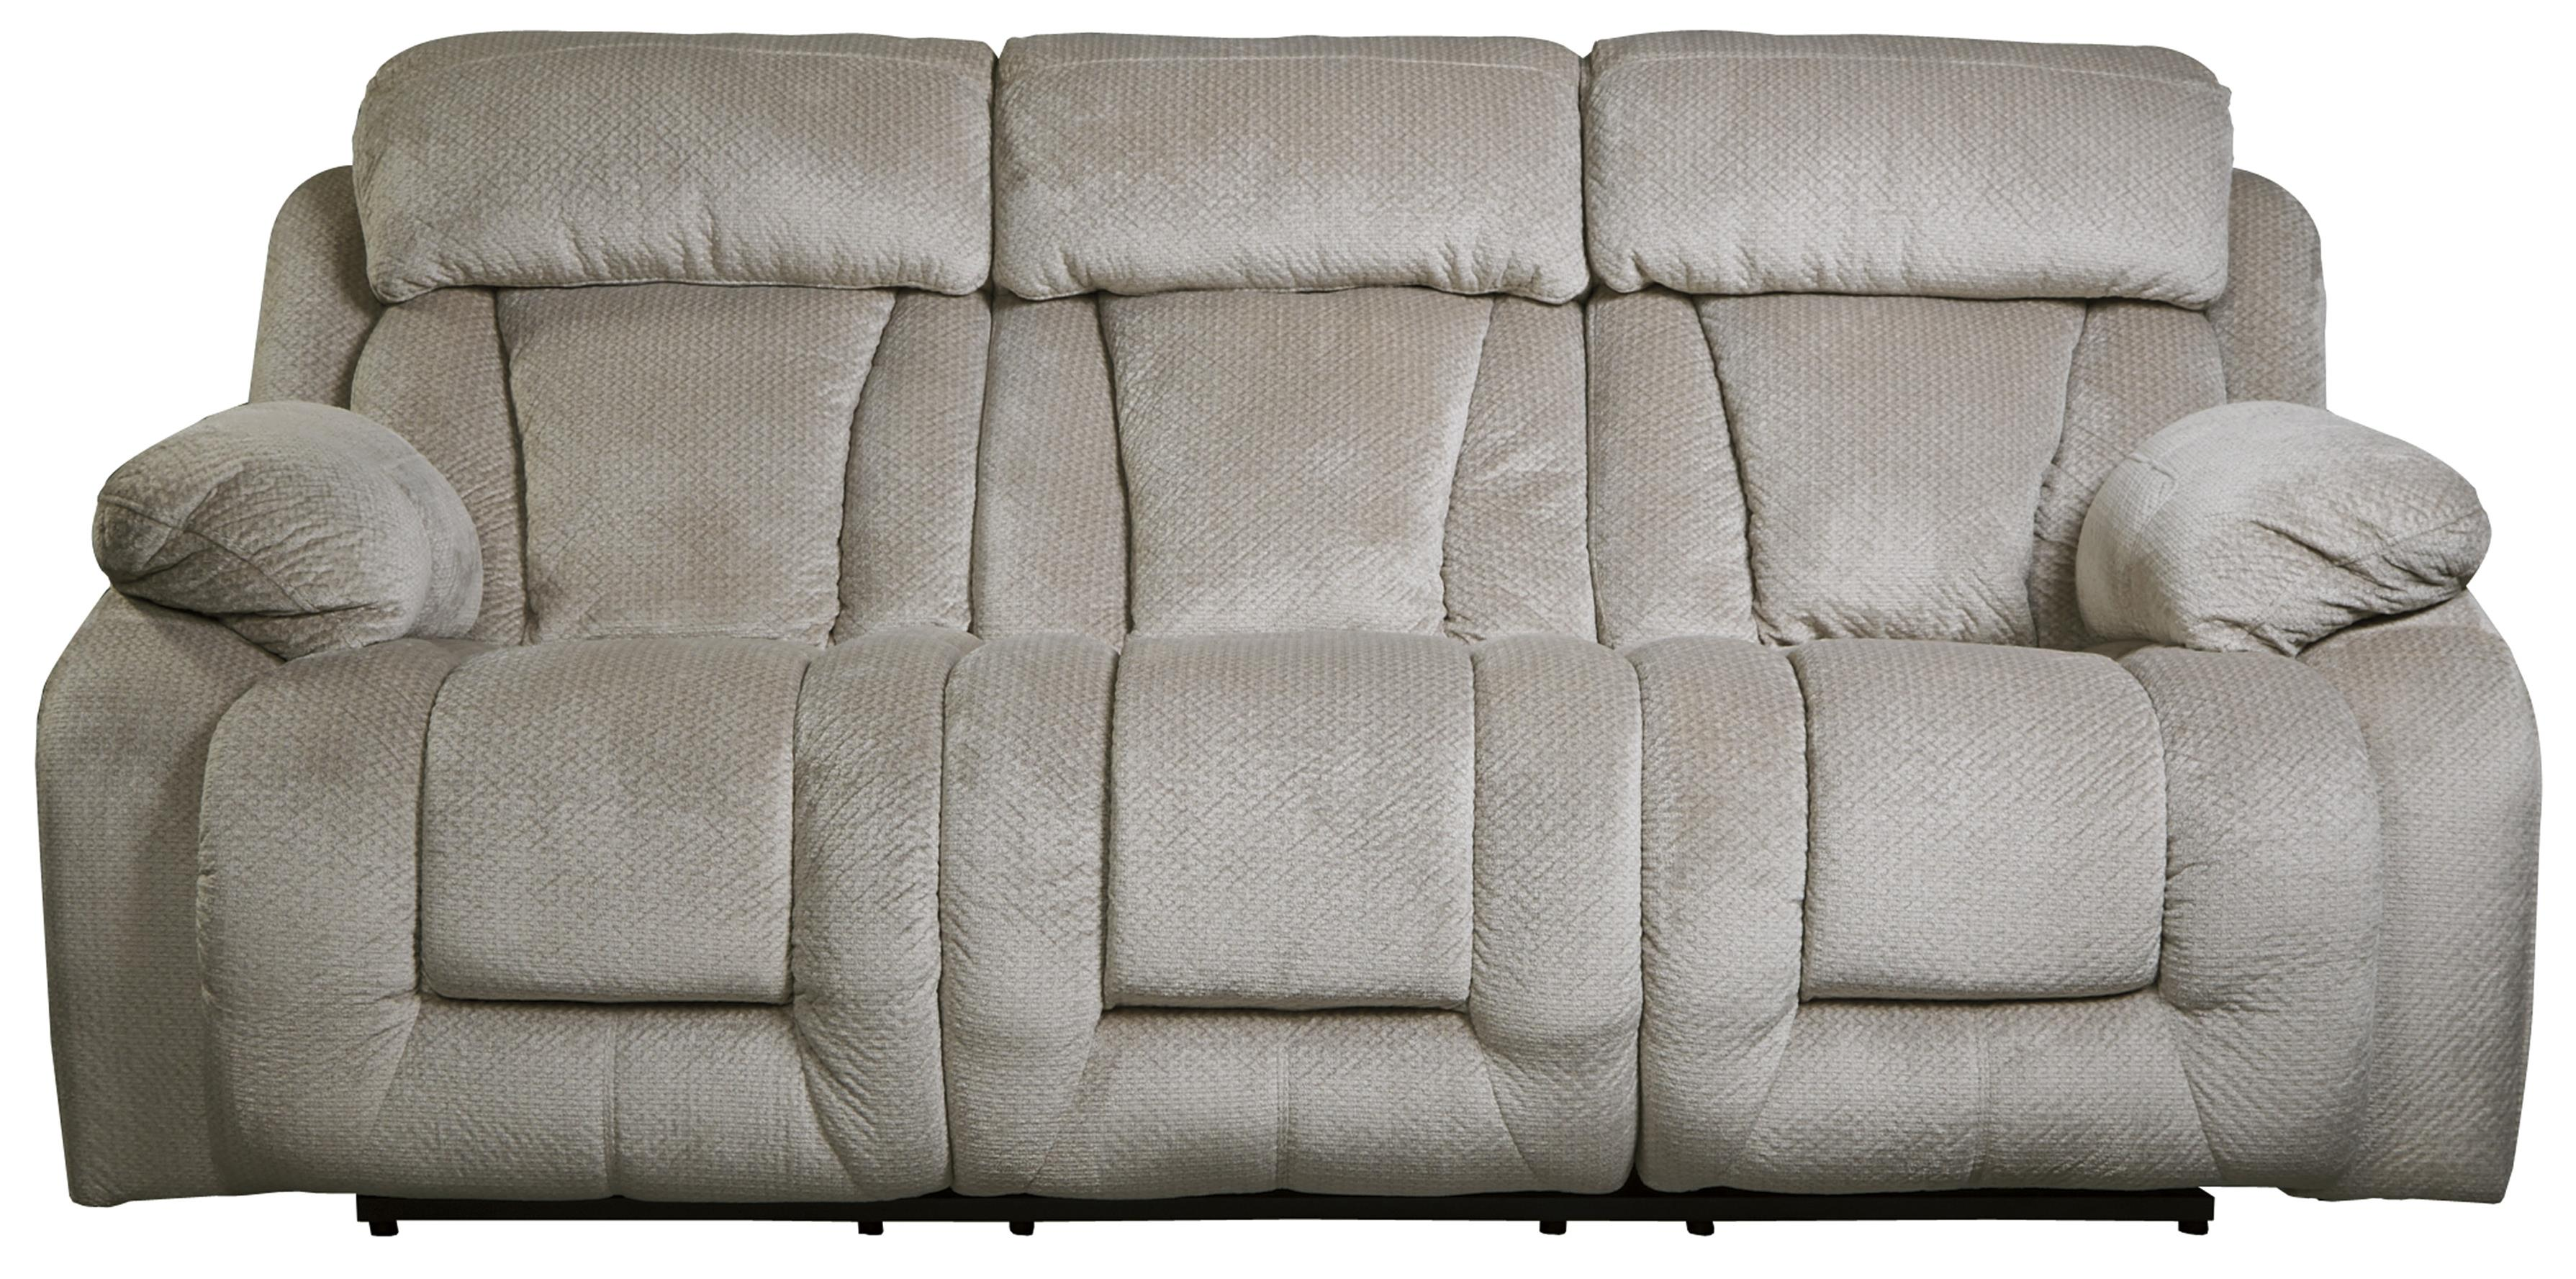 Signature Design by Ashley Stricklin Reclining Sofa - Item Number: 8650488